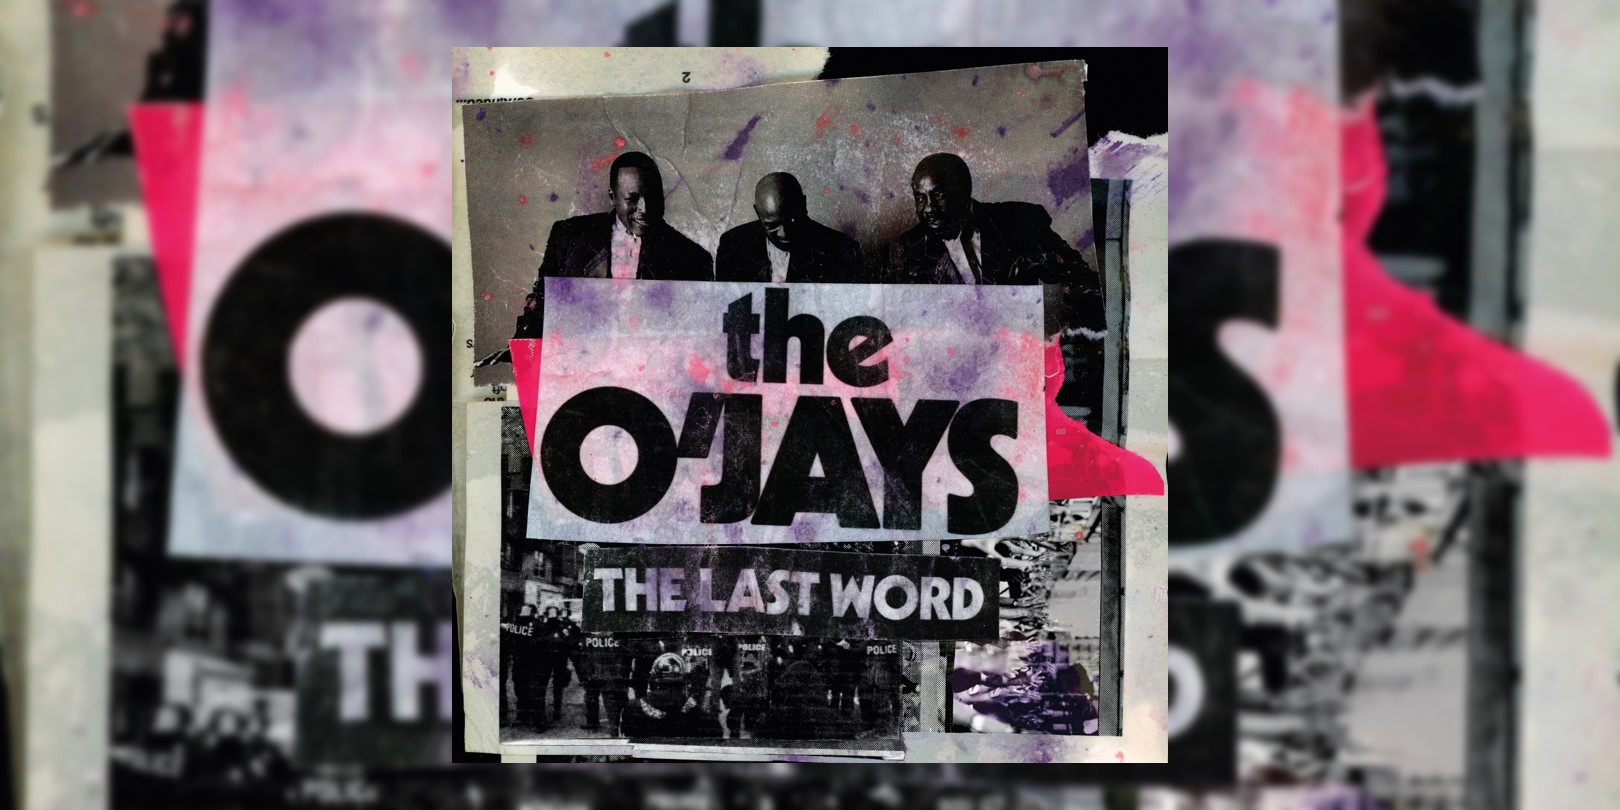 Resultado de imagen de The O'Jays - Lp: 'The last word'